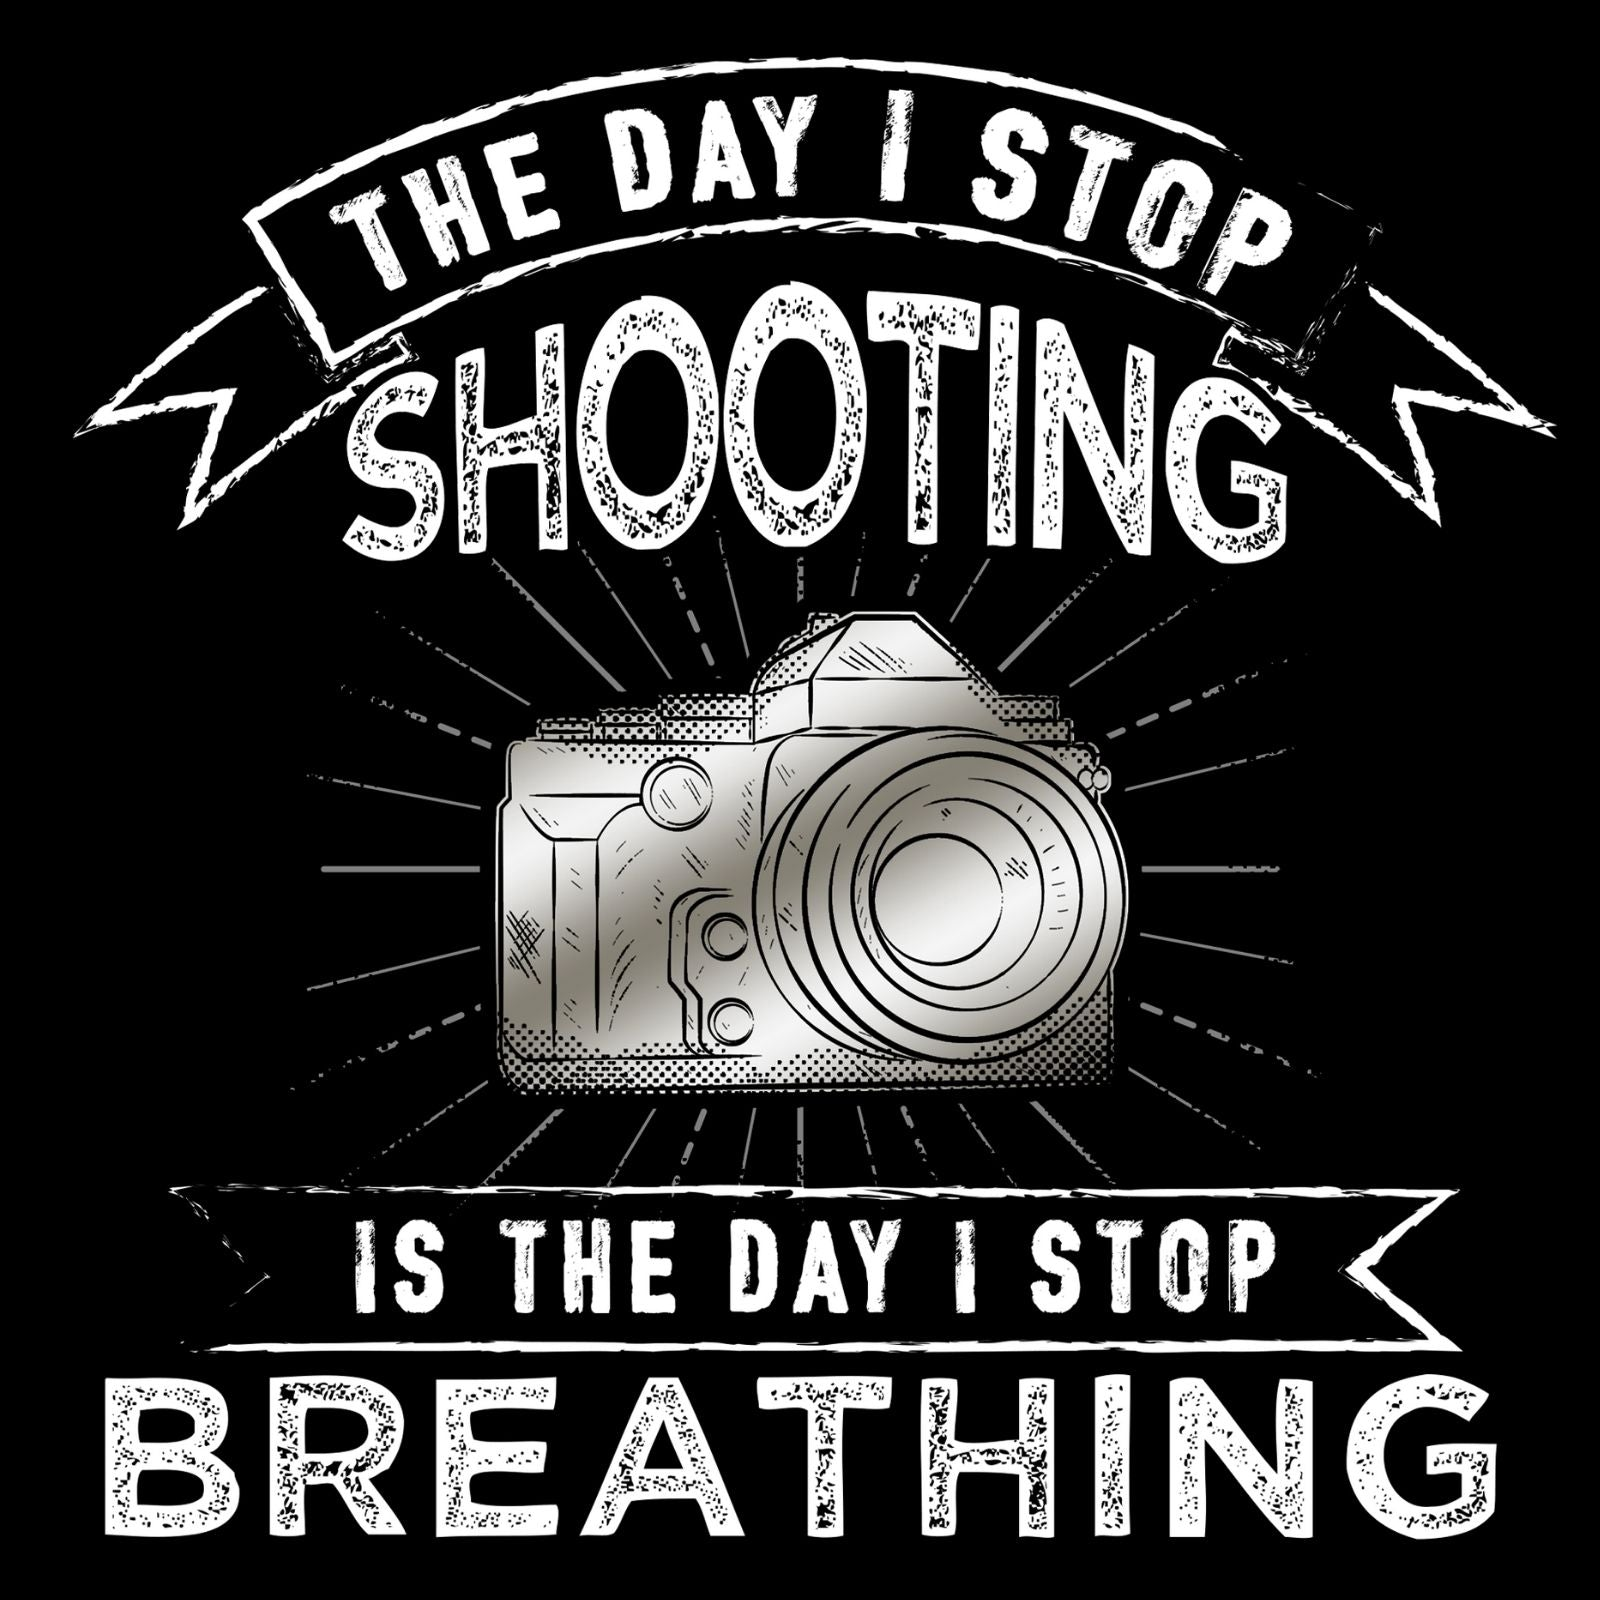 The Day I Stop Shooting Is The Day I Stop Breathing - Bastard Graphics